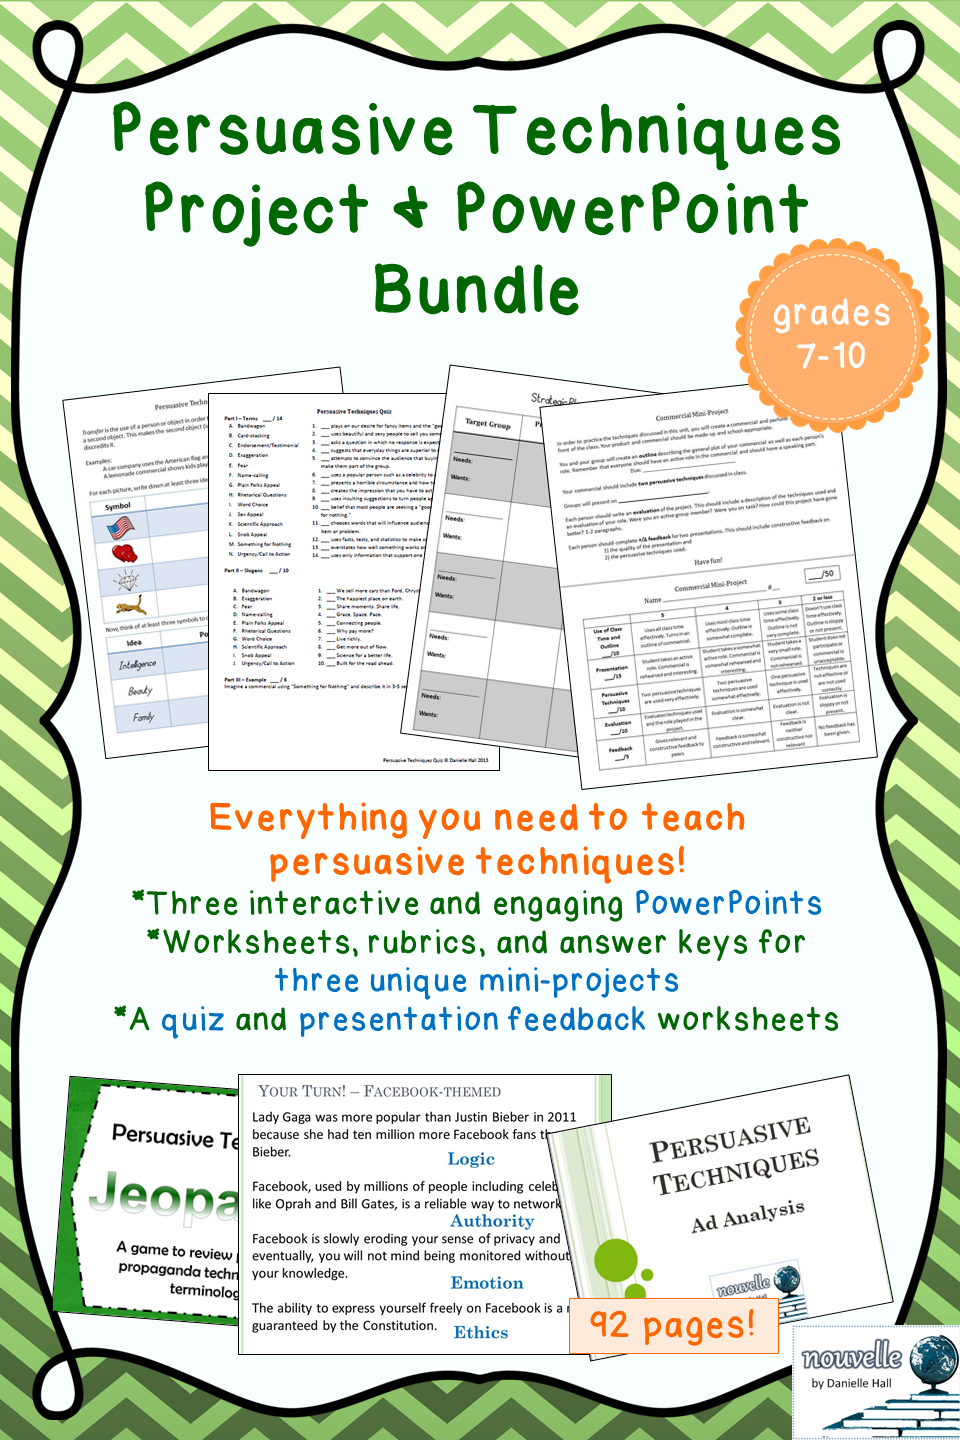 Worksheets Persuasive Techniques Worksheets persuasive techniques unit powerpoint project bundle bundle